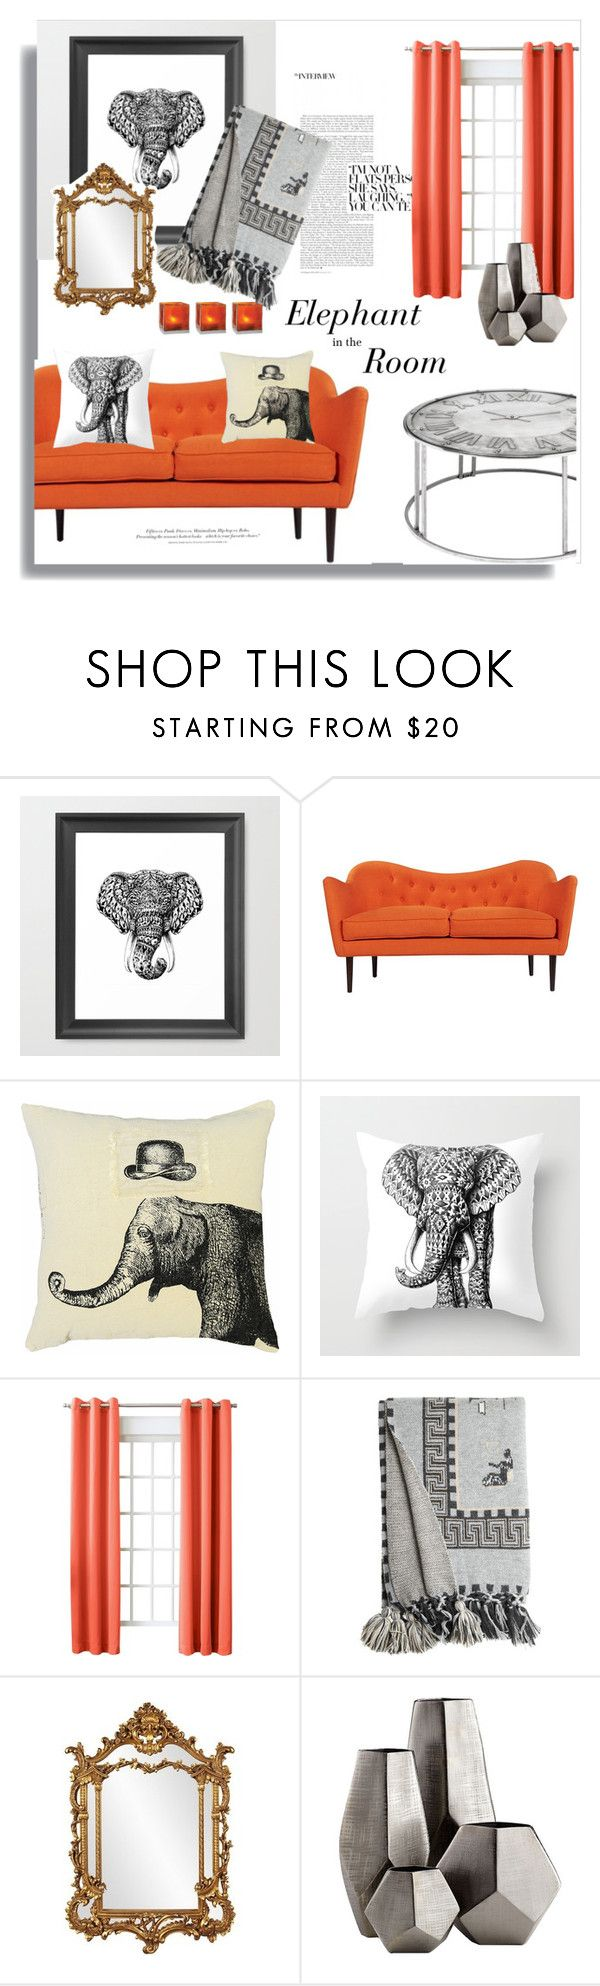 In The Room, Home Home, Design Homes, Interior Decorating, Zero, Moodboard,  Elephant, Polyvore